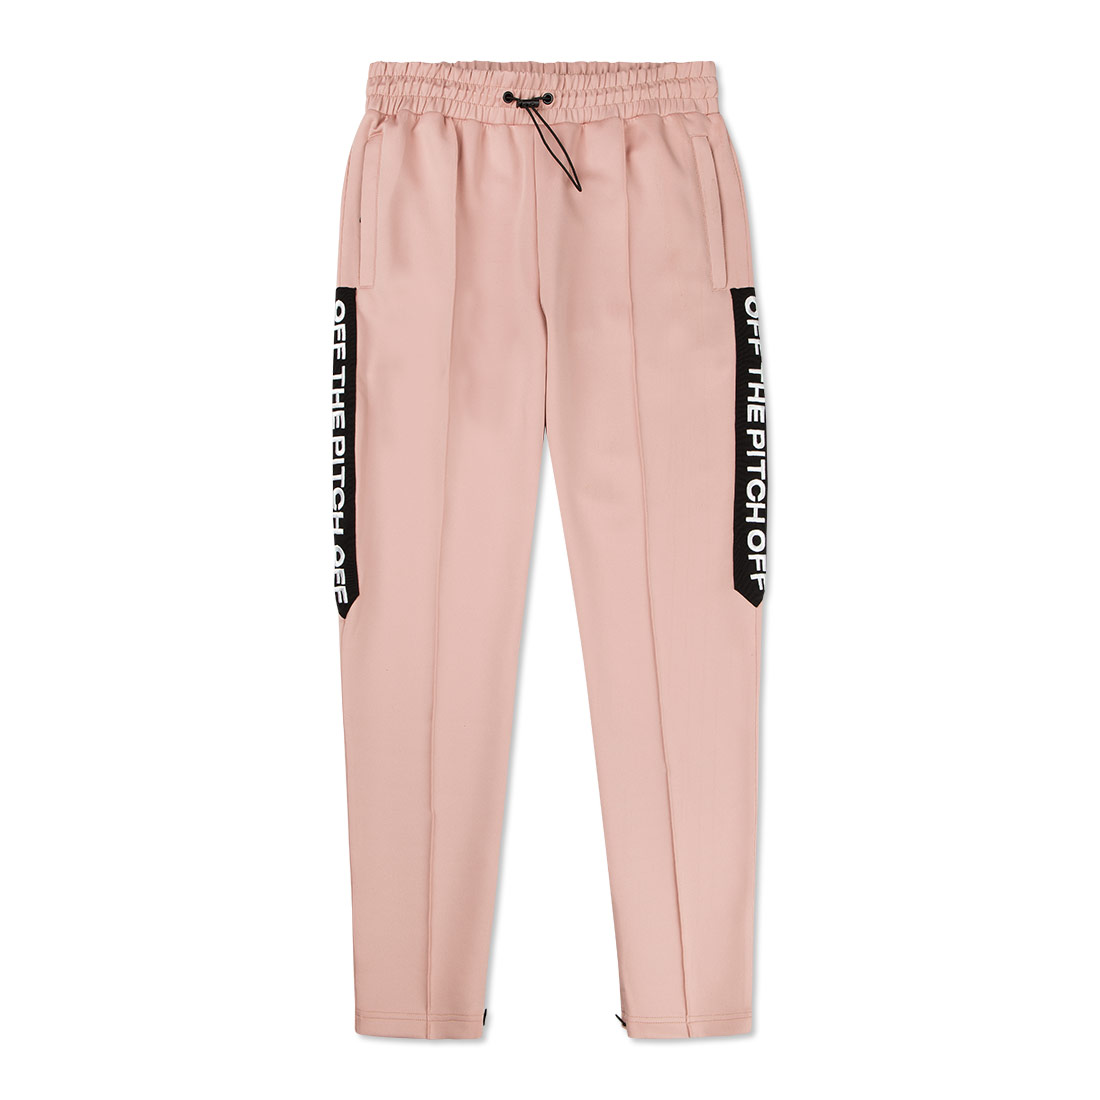 The SoulTrack Pants Off The Pitch